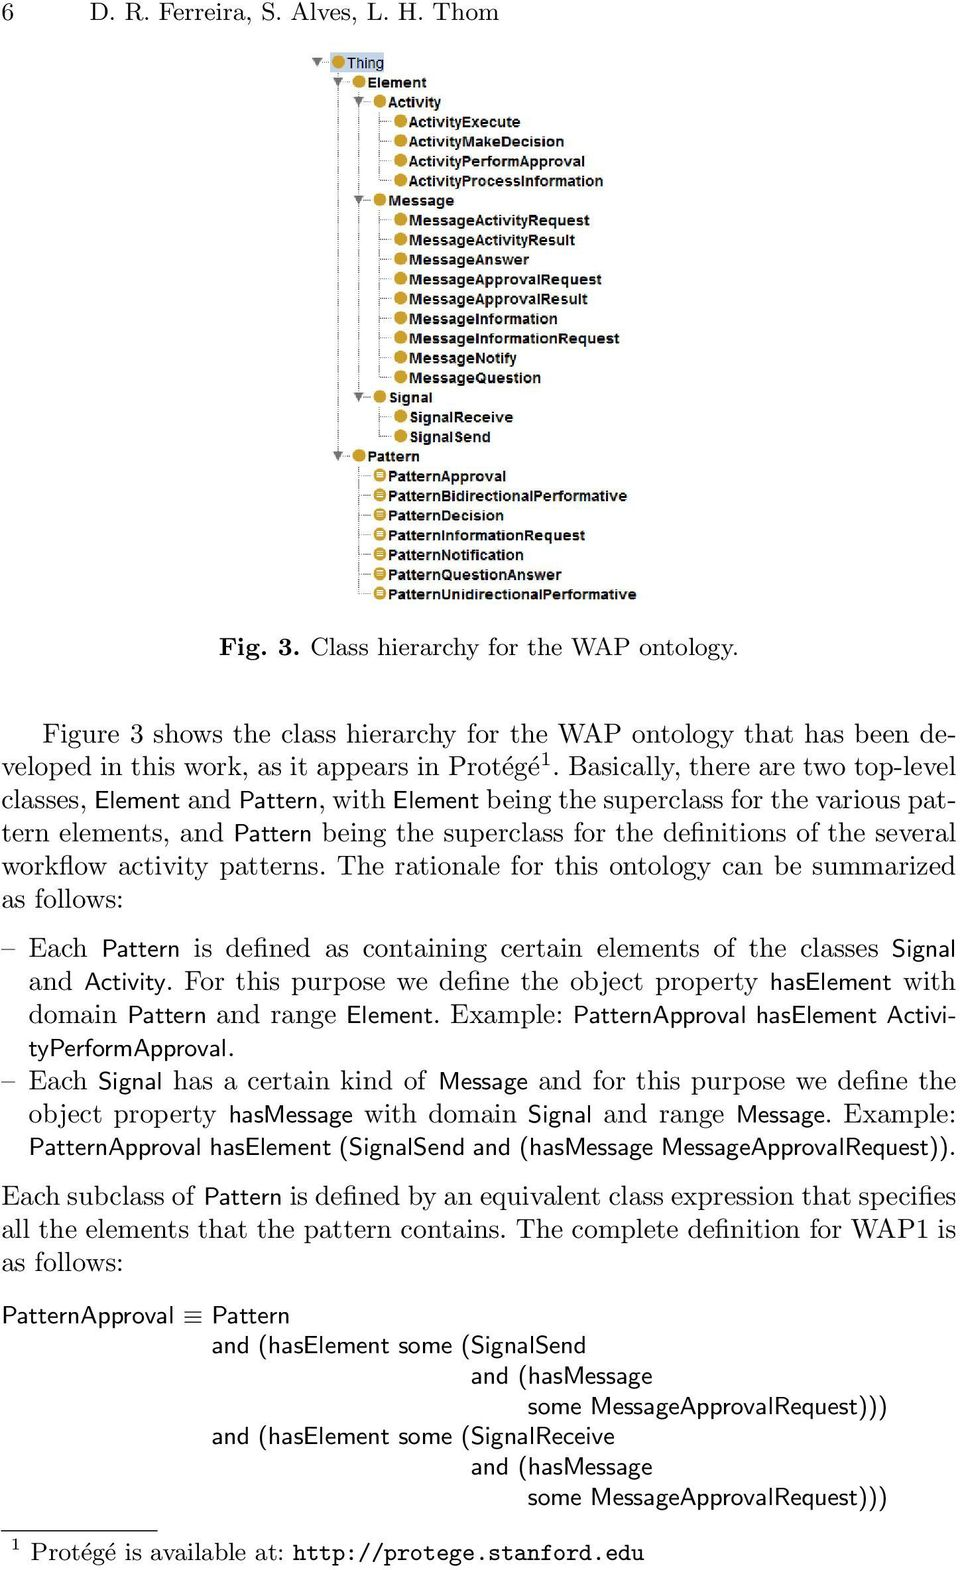 Basically, there are two top-level classes, Element and Pattern, with Element being the superclass for the various pattern elements, and Pattern being the superclass for the definitions of the